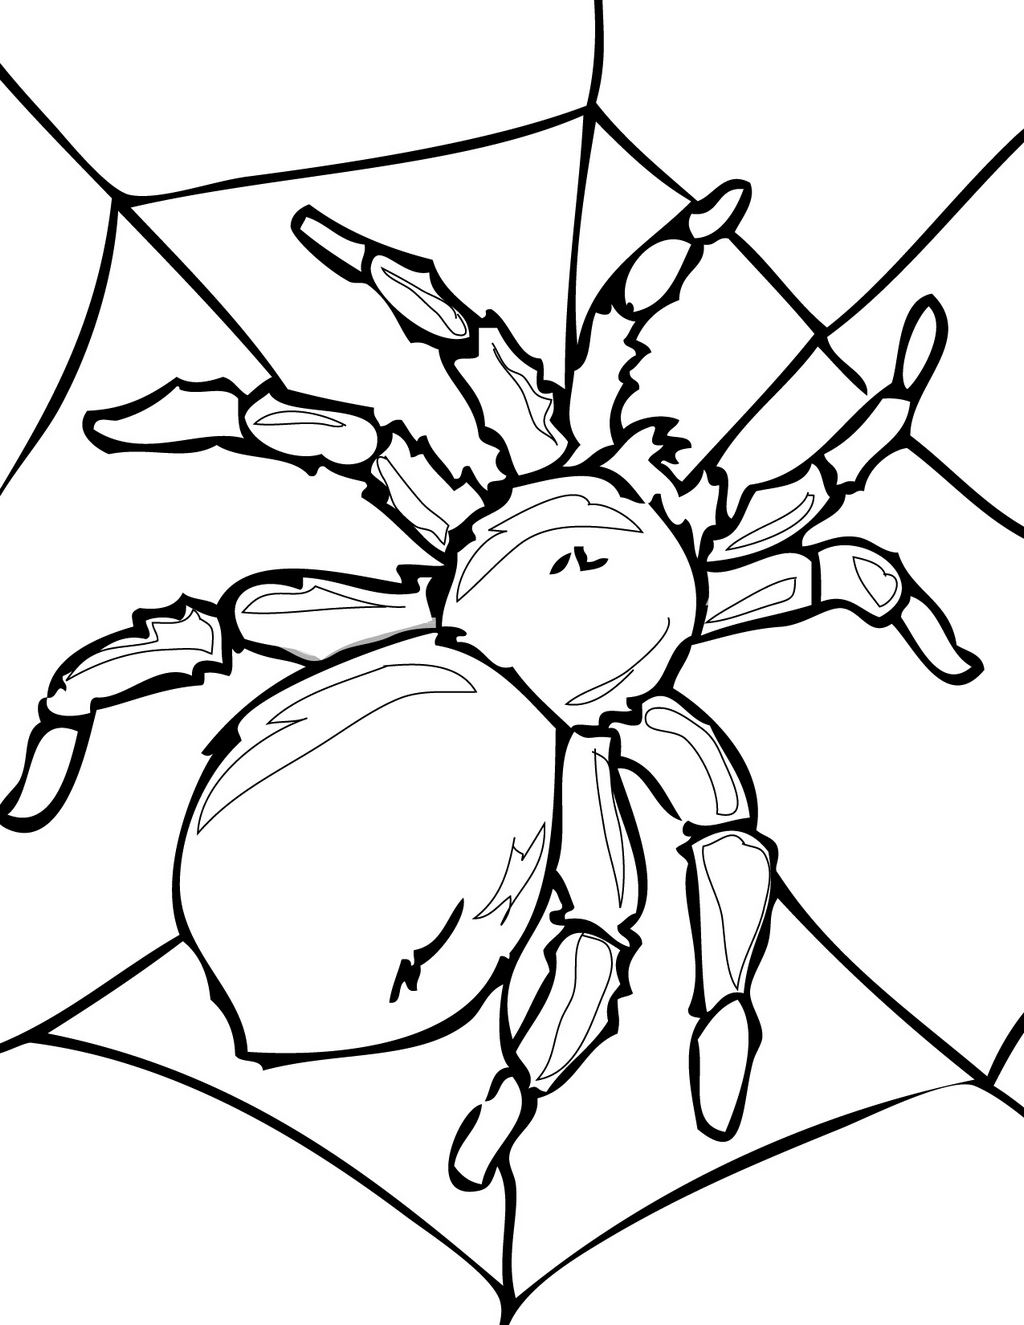 Printable Spider Coloring Book Activity